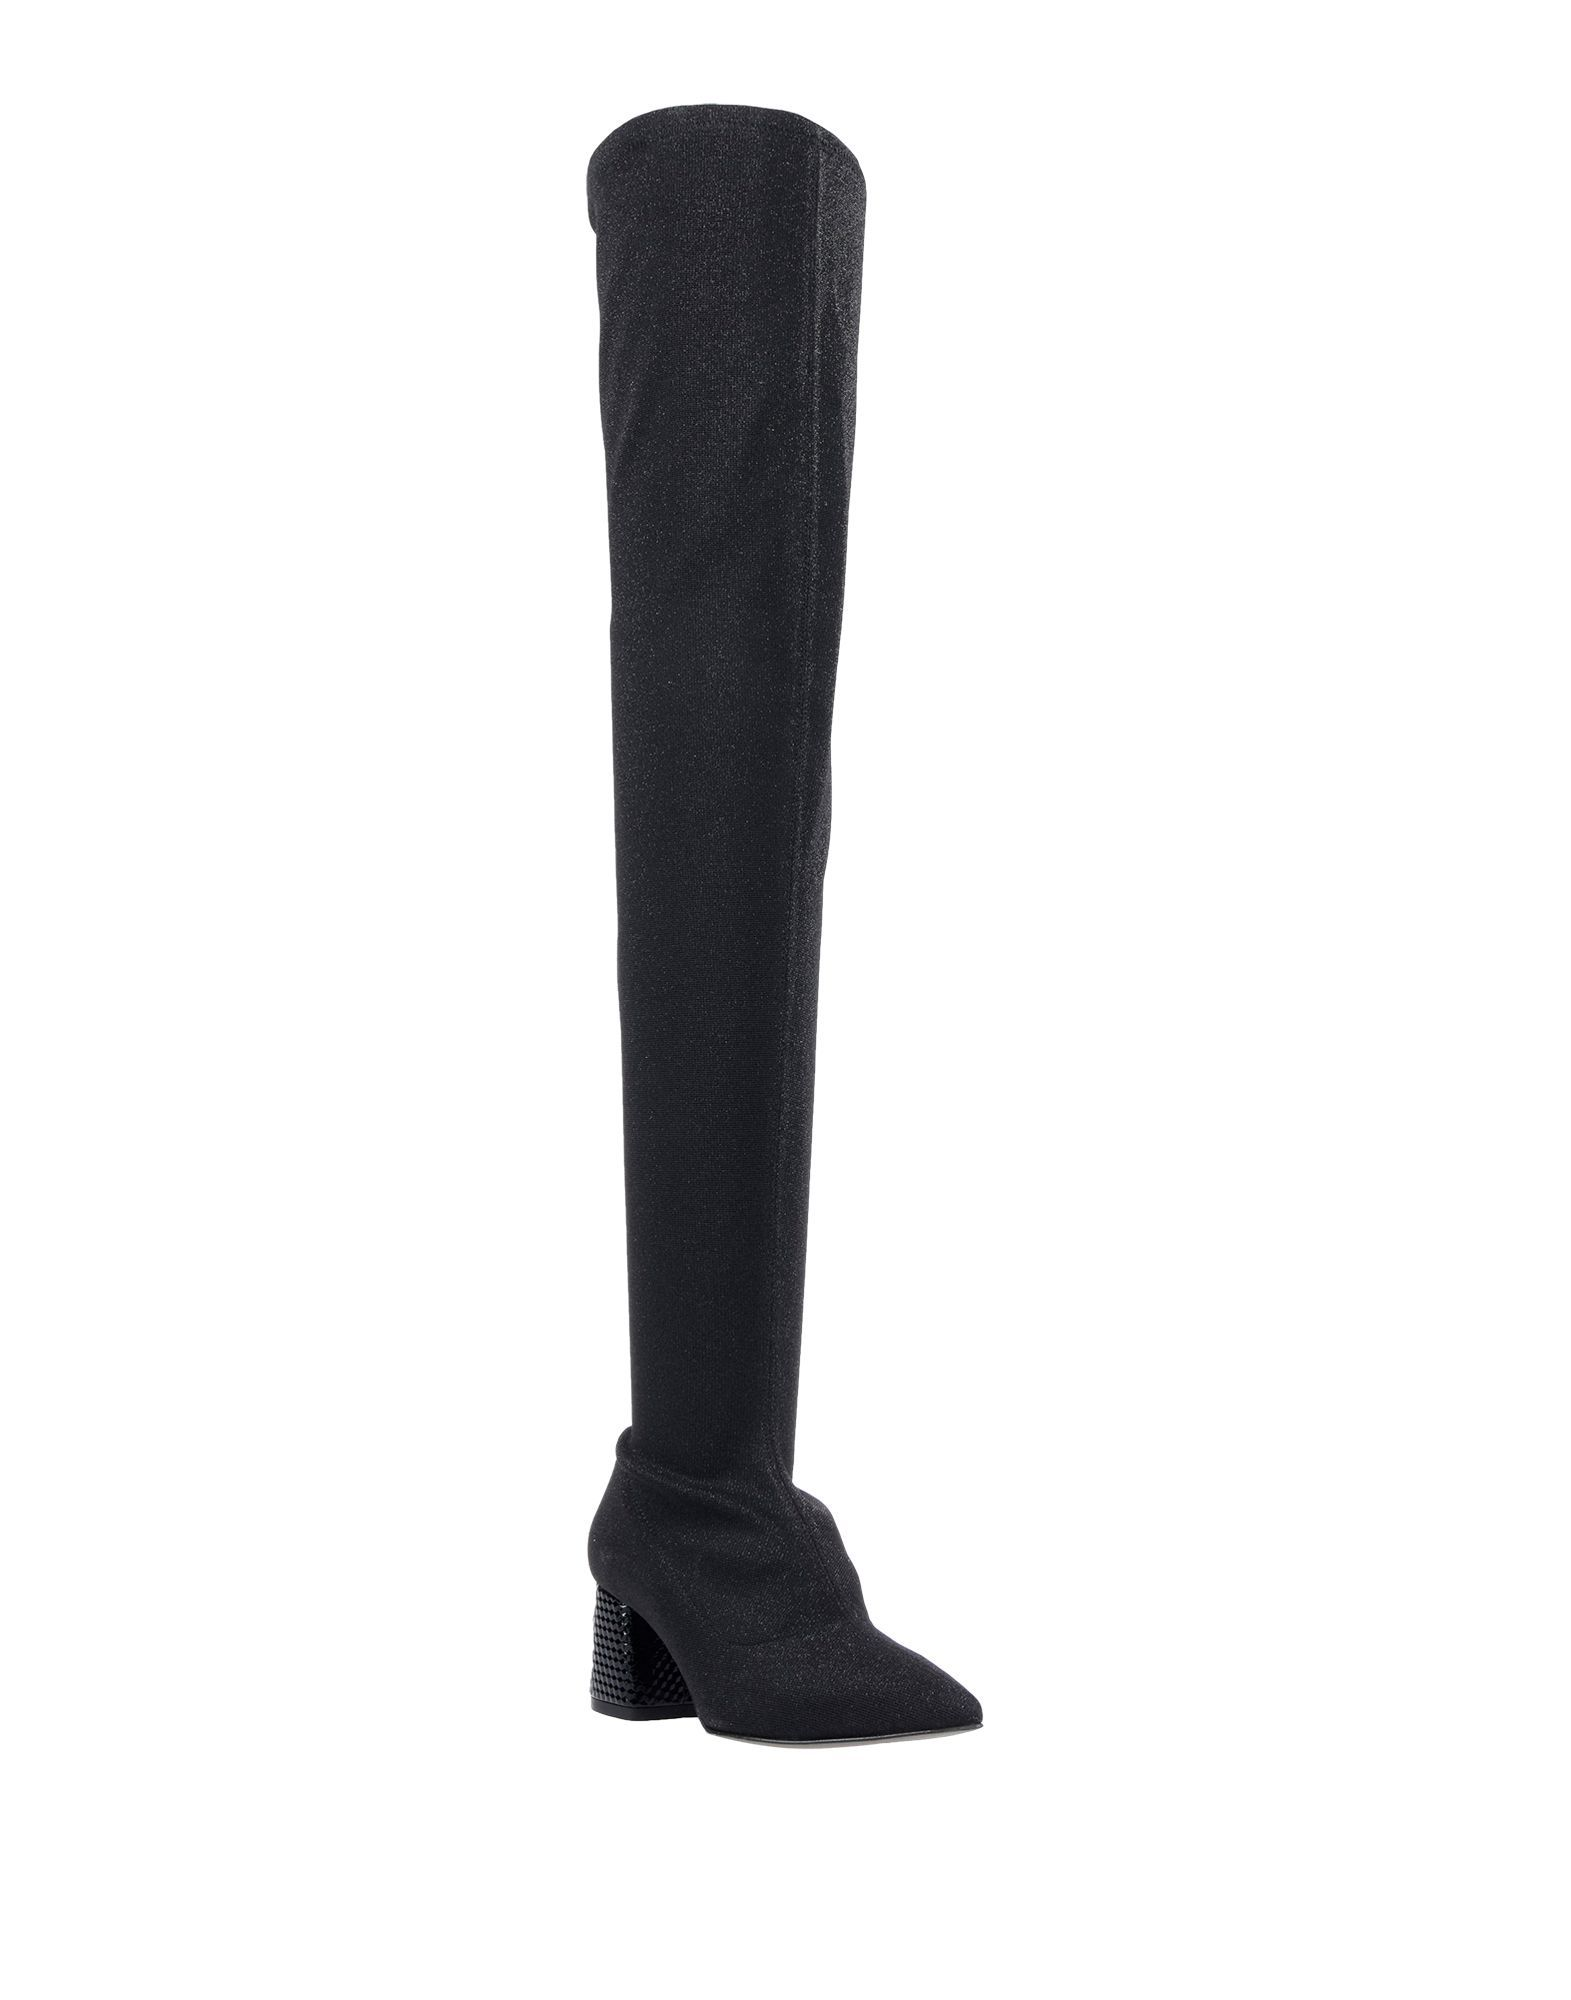 Pollini Black Over The Knee Boots